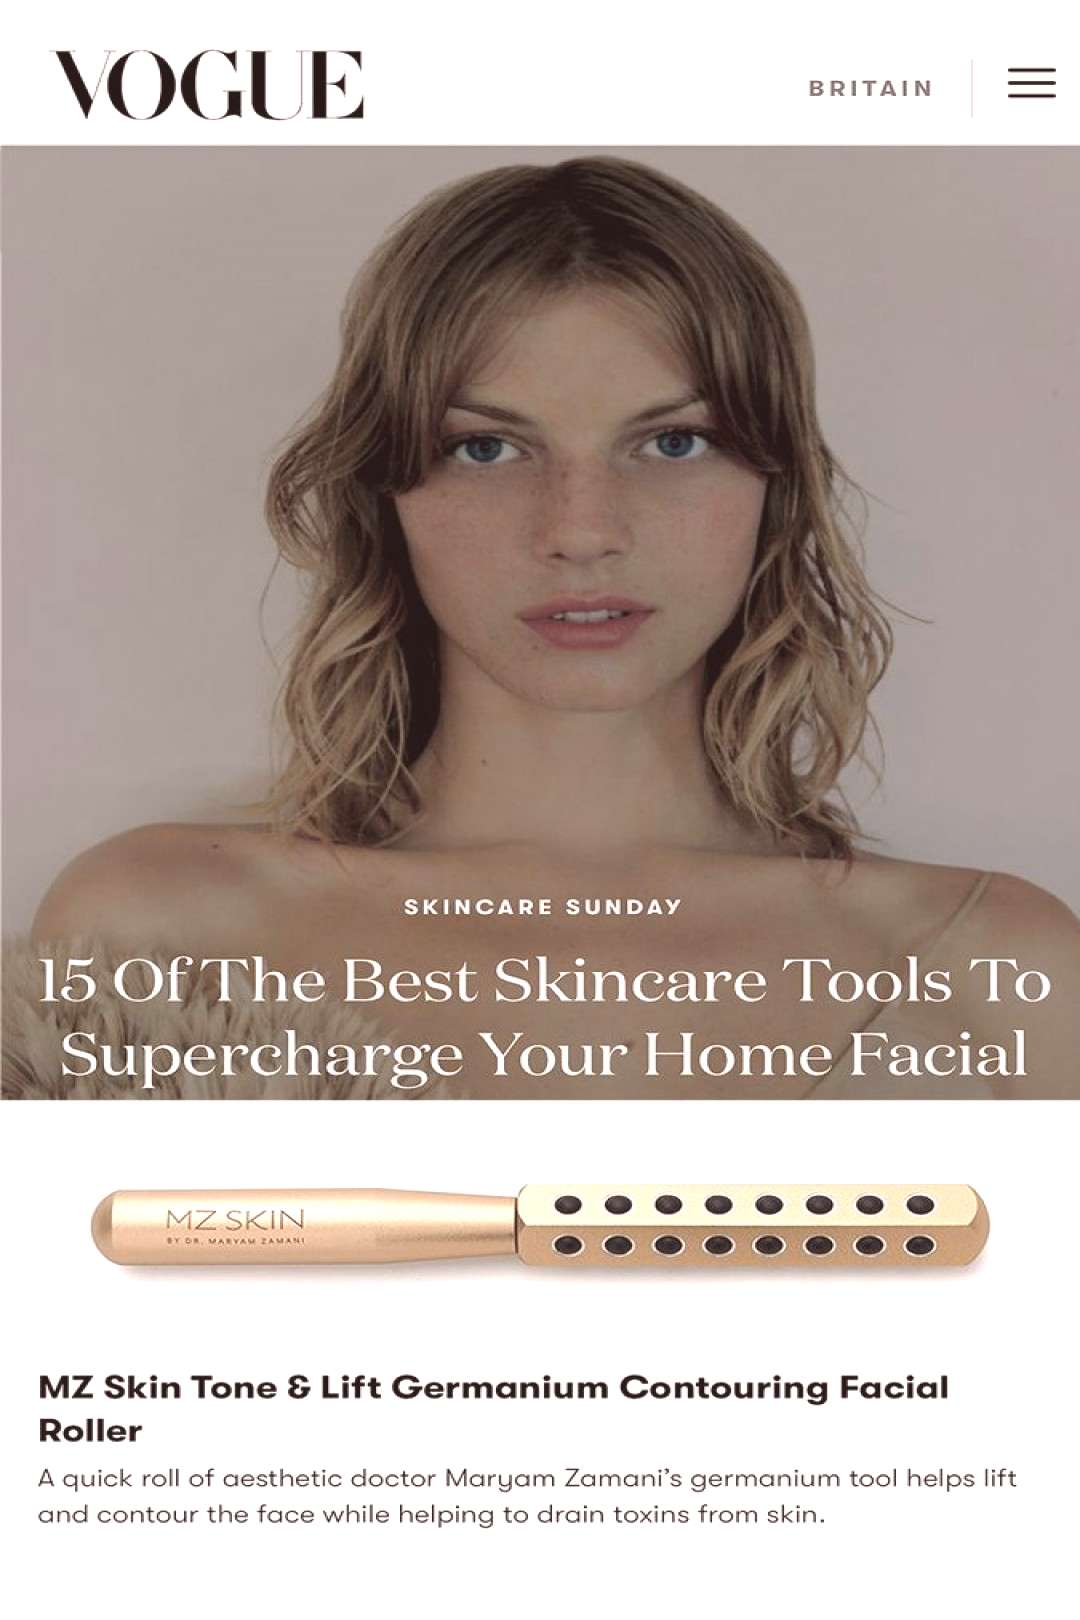 15 Of The Best Skincare Tools To Supercharge Your Home Facial | British Vogue Vogue features MZ Ski